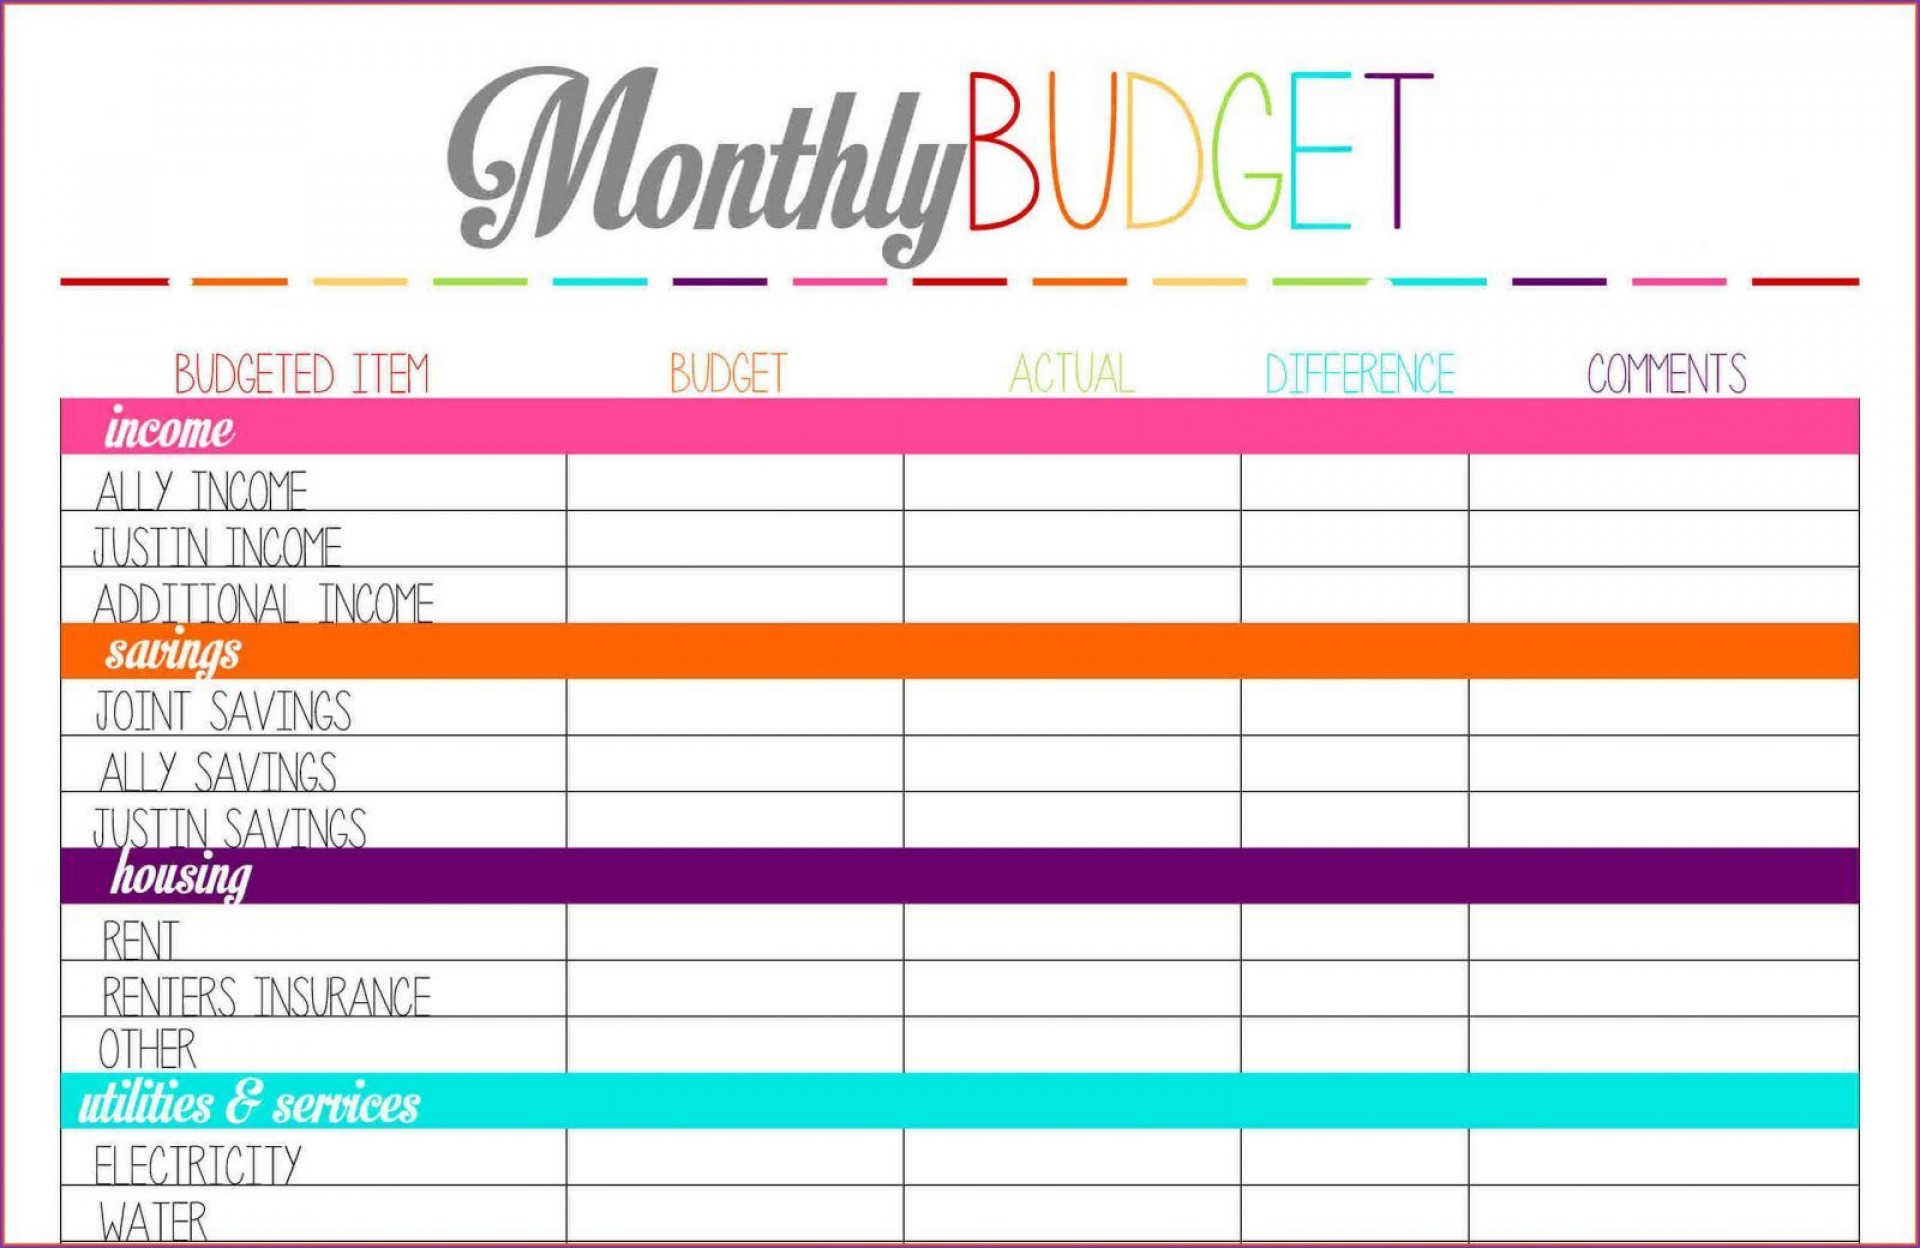 007 Unusual Personal Budget Spreadsheet Template For Mac Highest Clarity 1920